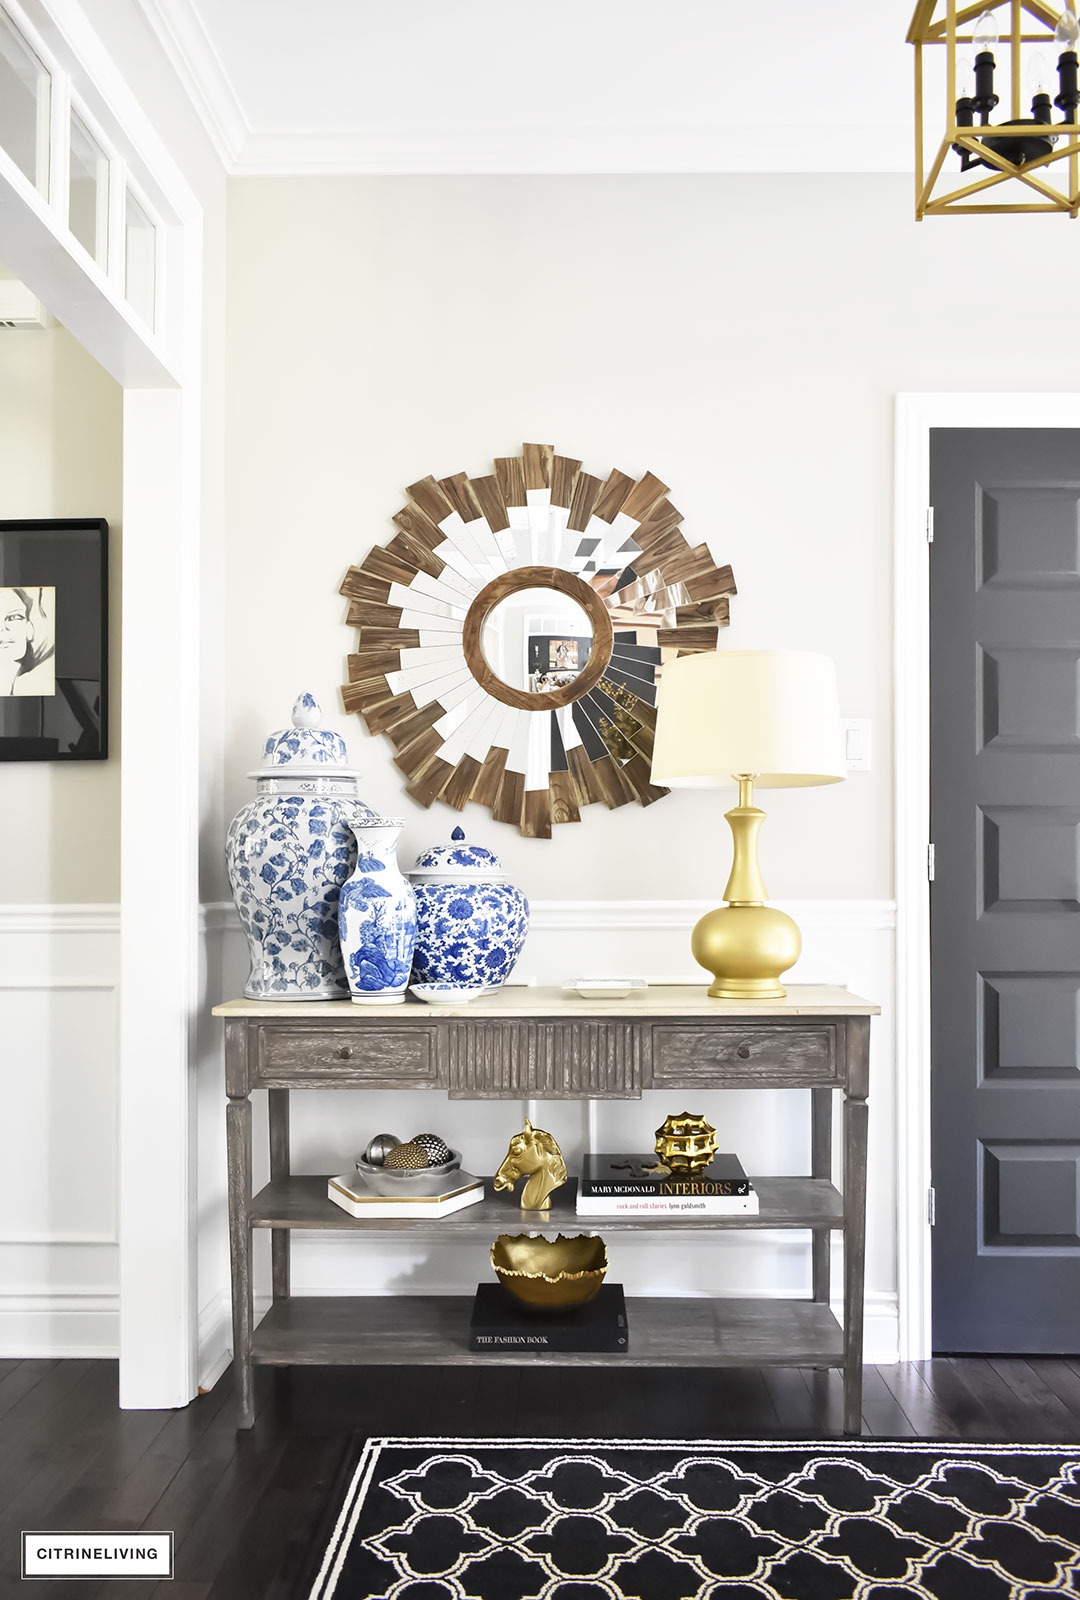 Fall home tour with elegant entryway featuring layers of gold accessories and blue and white ginger jars.